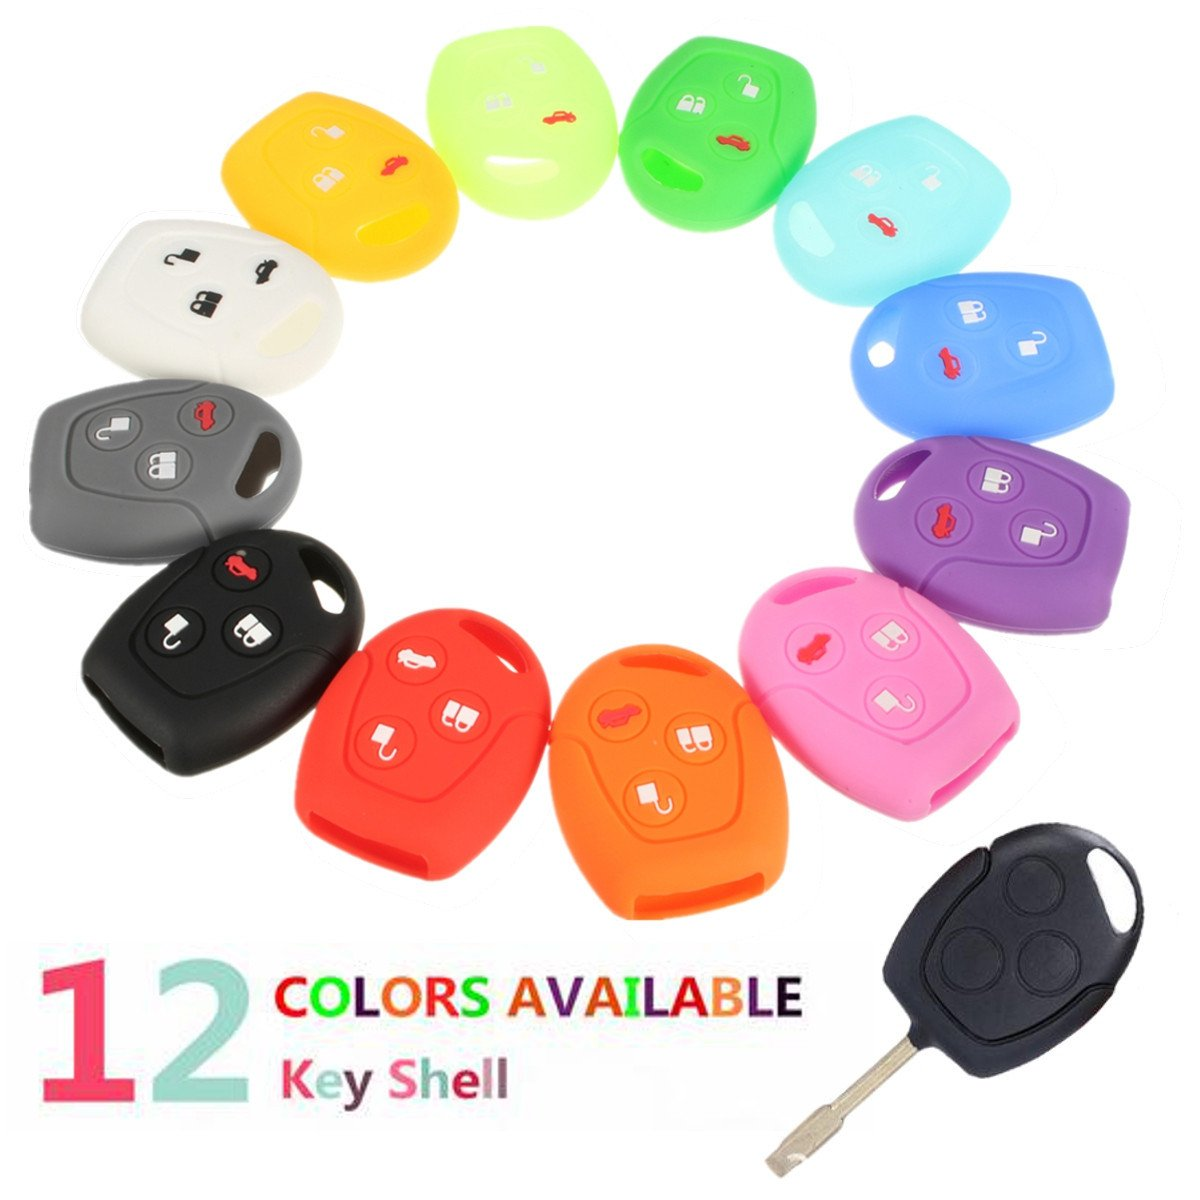 Multicolor 3 Botton Silicone Remote Key Case Cover for FORD Focus Mondeo for Festiva Galaxy C-Max 9702 12 Colors